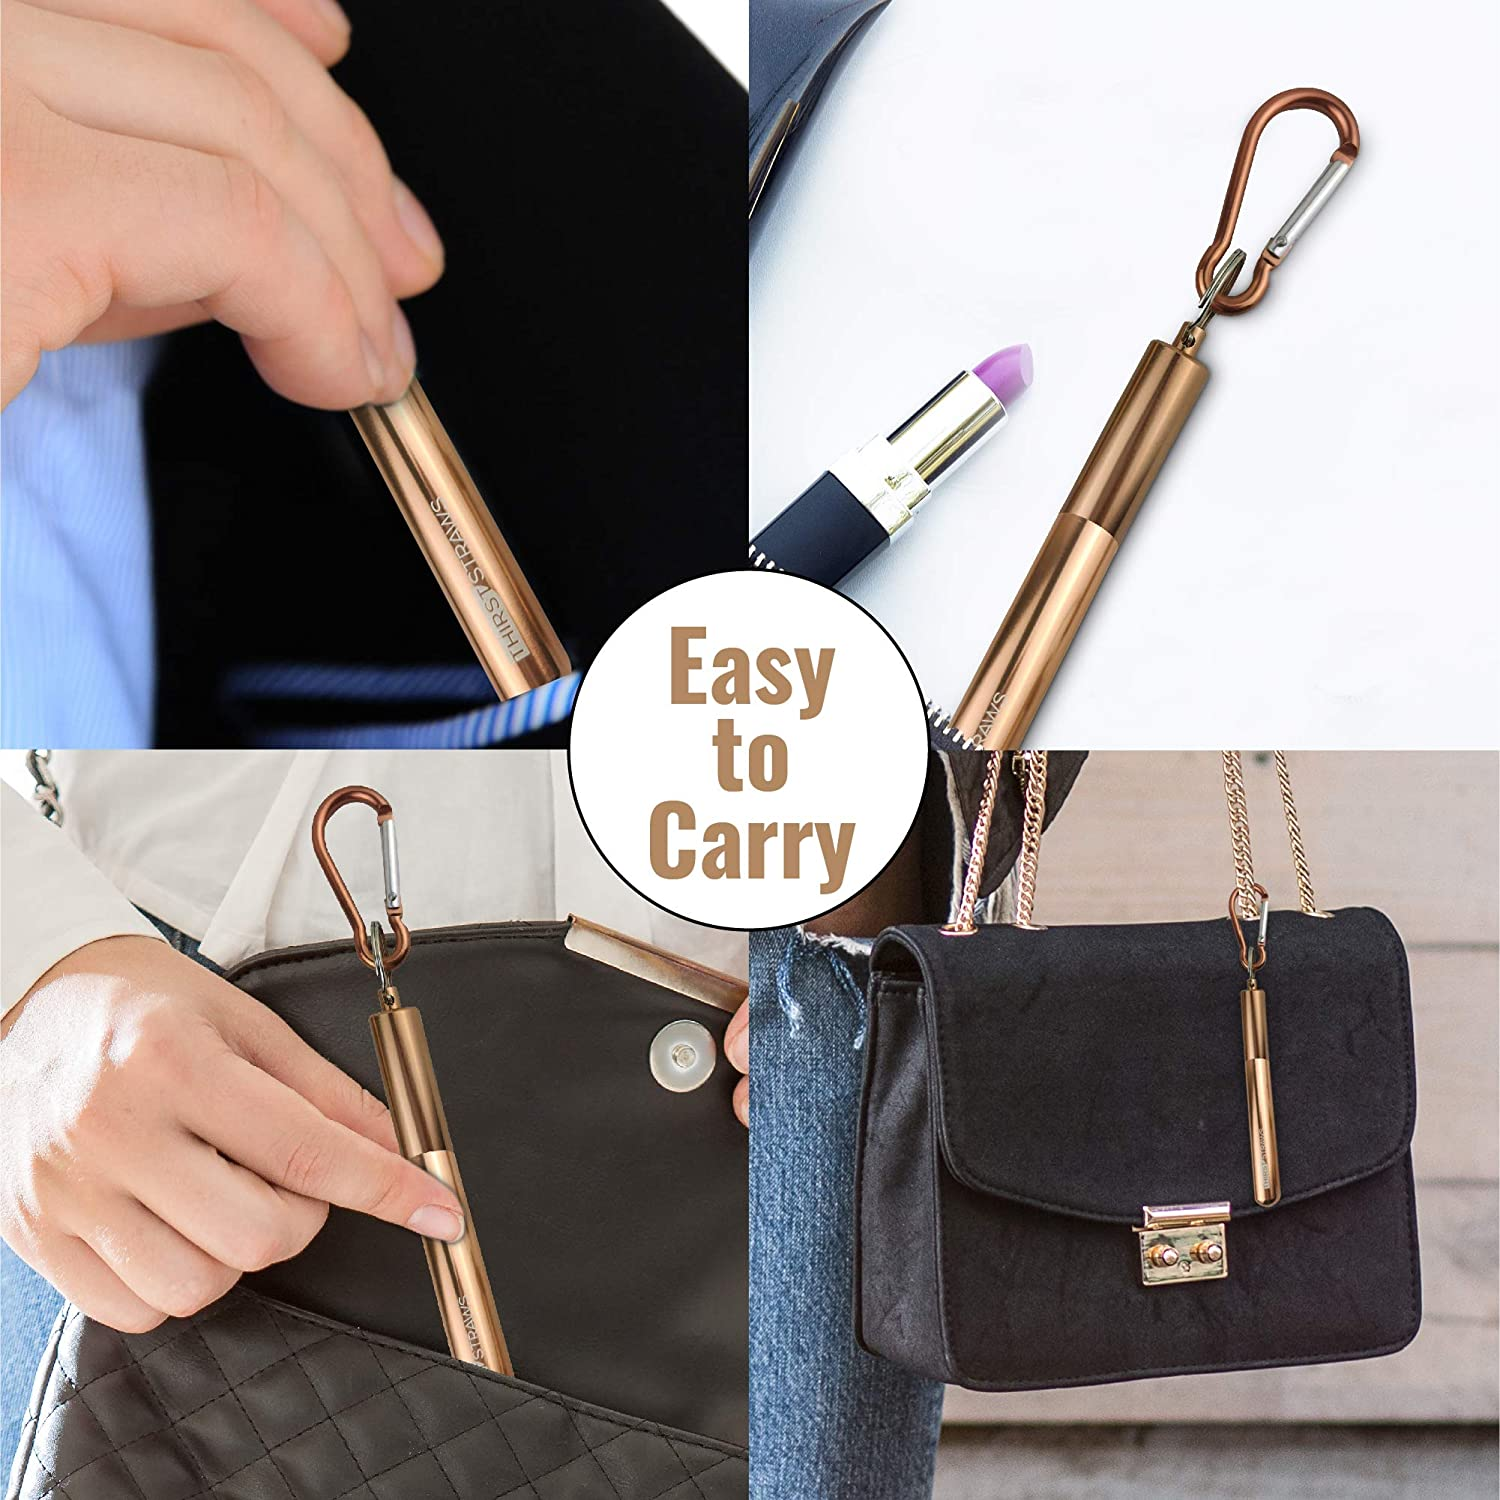 Thirst Straws Telescopic Reusable Straws Home Environment 2 Pack Folding Metal Straw with Case in Stainless Steel Celebrations Ideal for Parties Travel Office